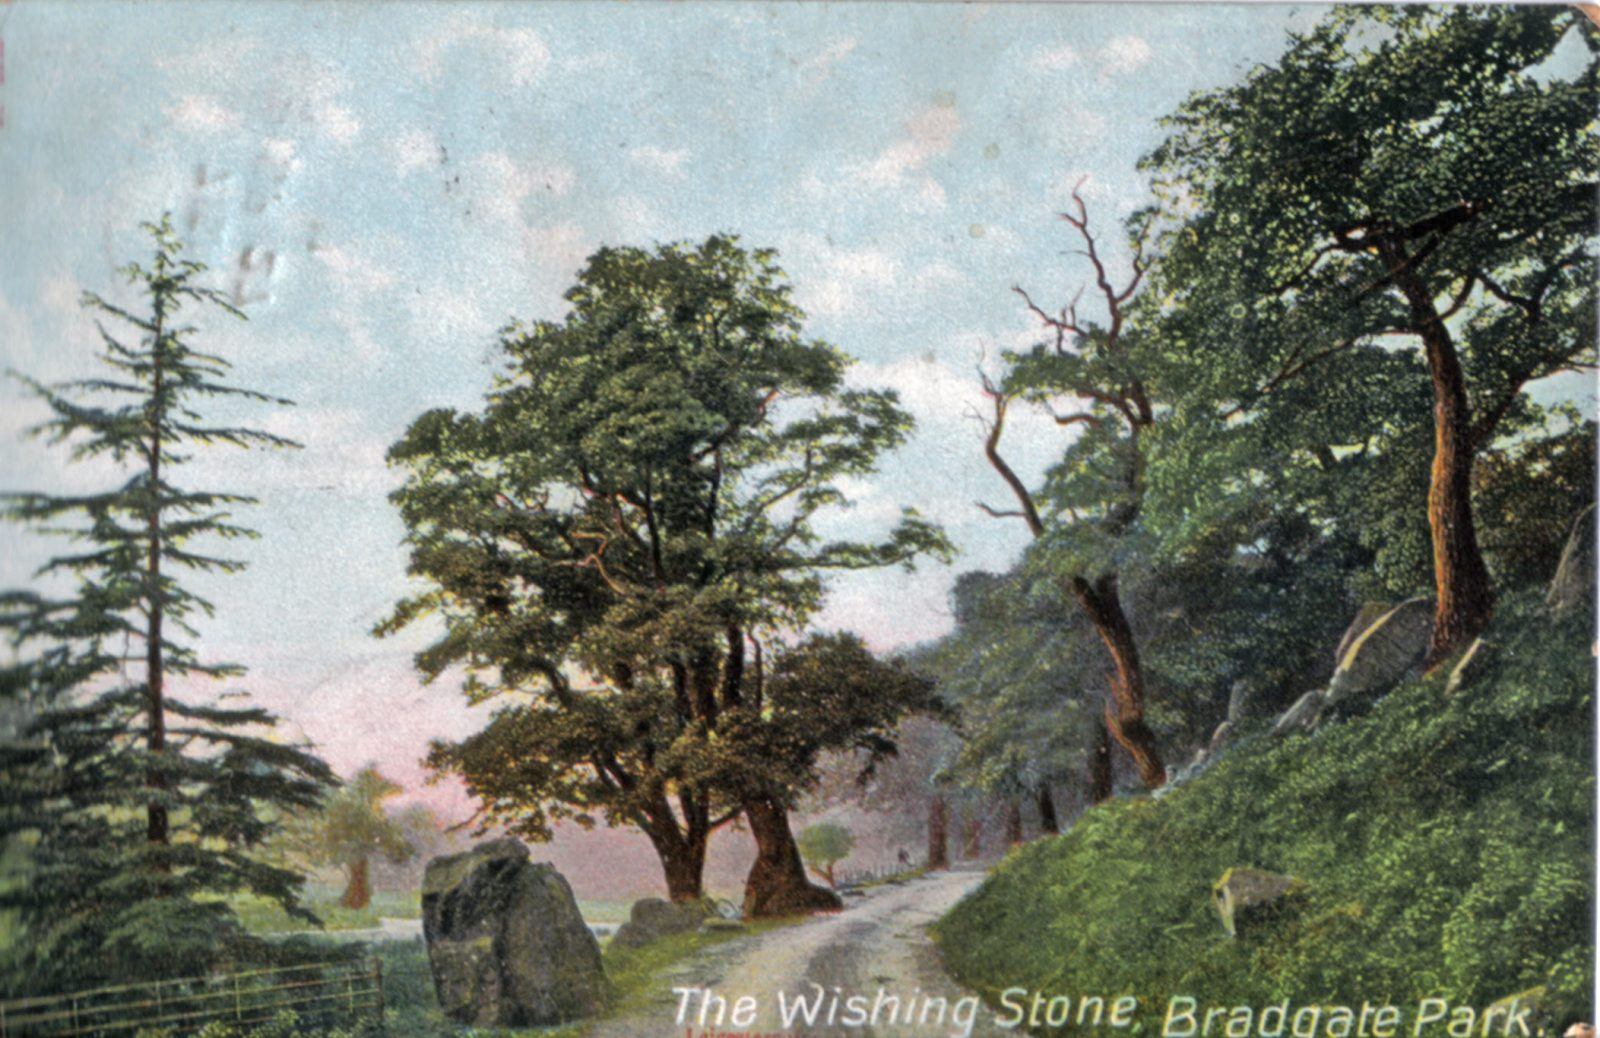 Bradgate Park, Leicester. 1901-1920: The Wishing Stone. Standing Stone. A natural boulder in Bradgate Park about half-way between the Newton Lindford car park and the ruins at Bradgate. Franked 1911 (File:1187)